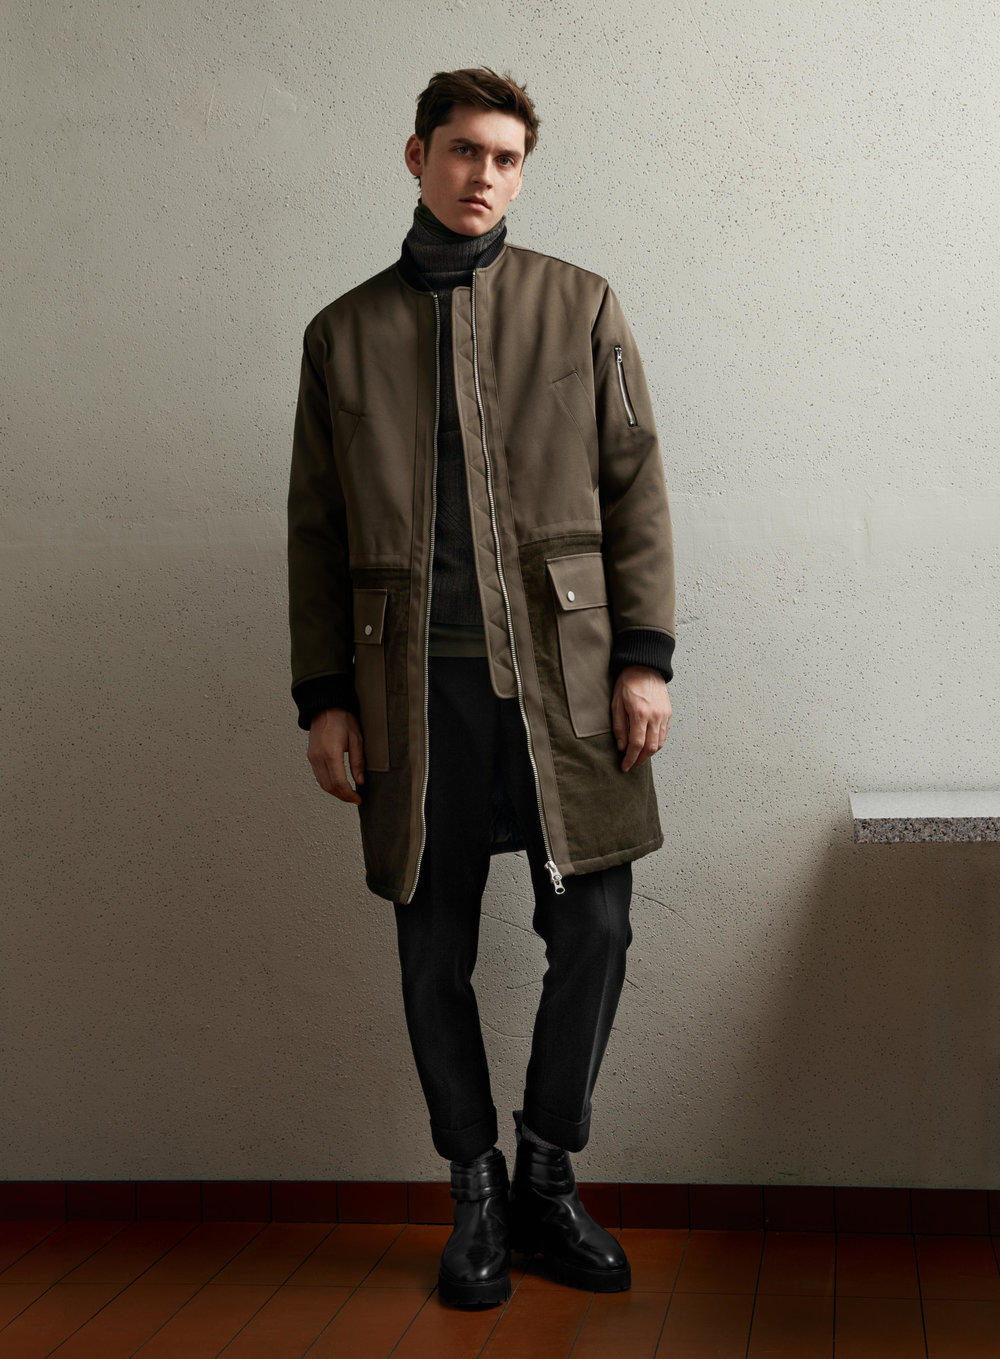 Studio coat, £79.99 Studio trousers, £39.99 Studio boots, £119.99